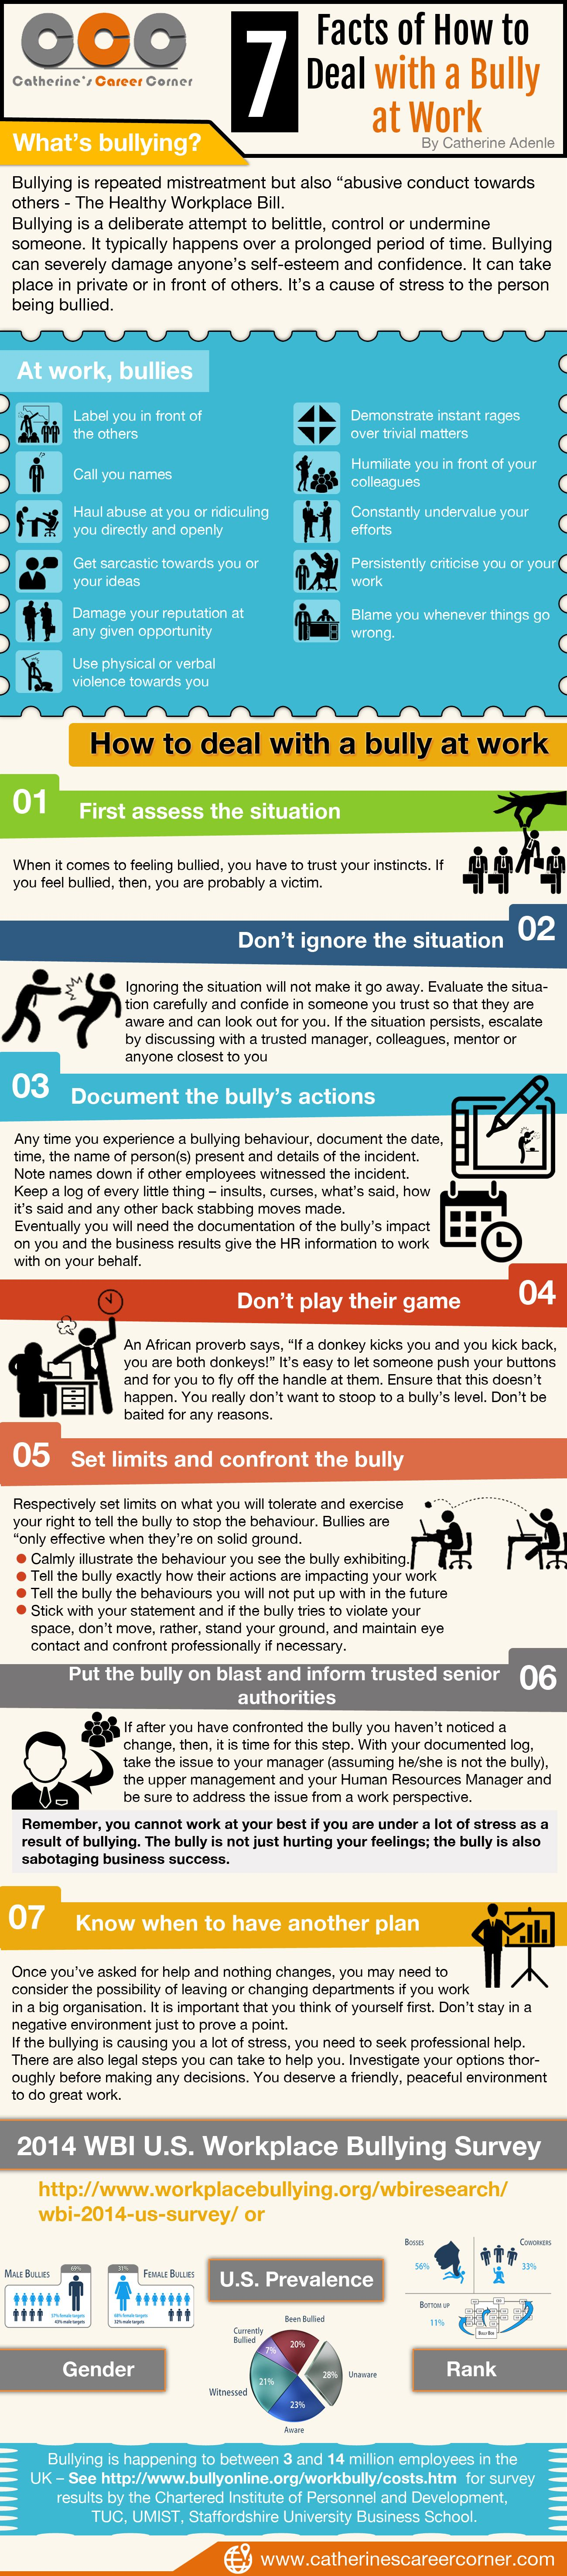 How to address bullying at work